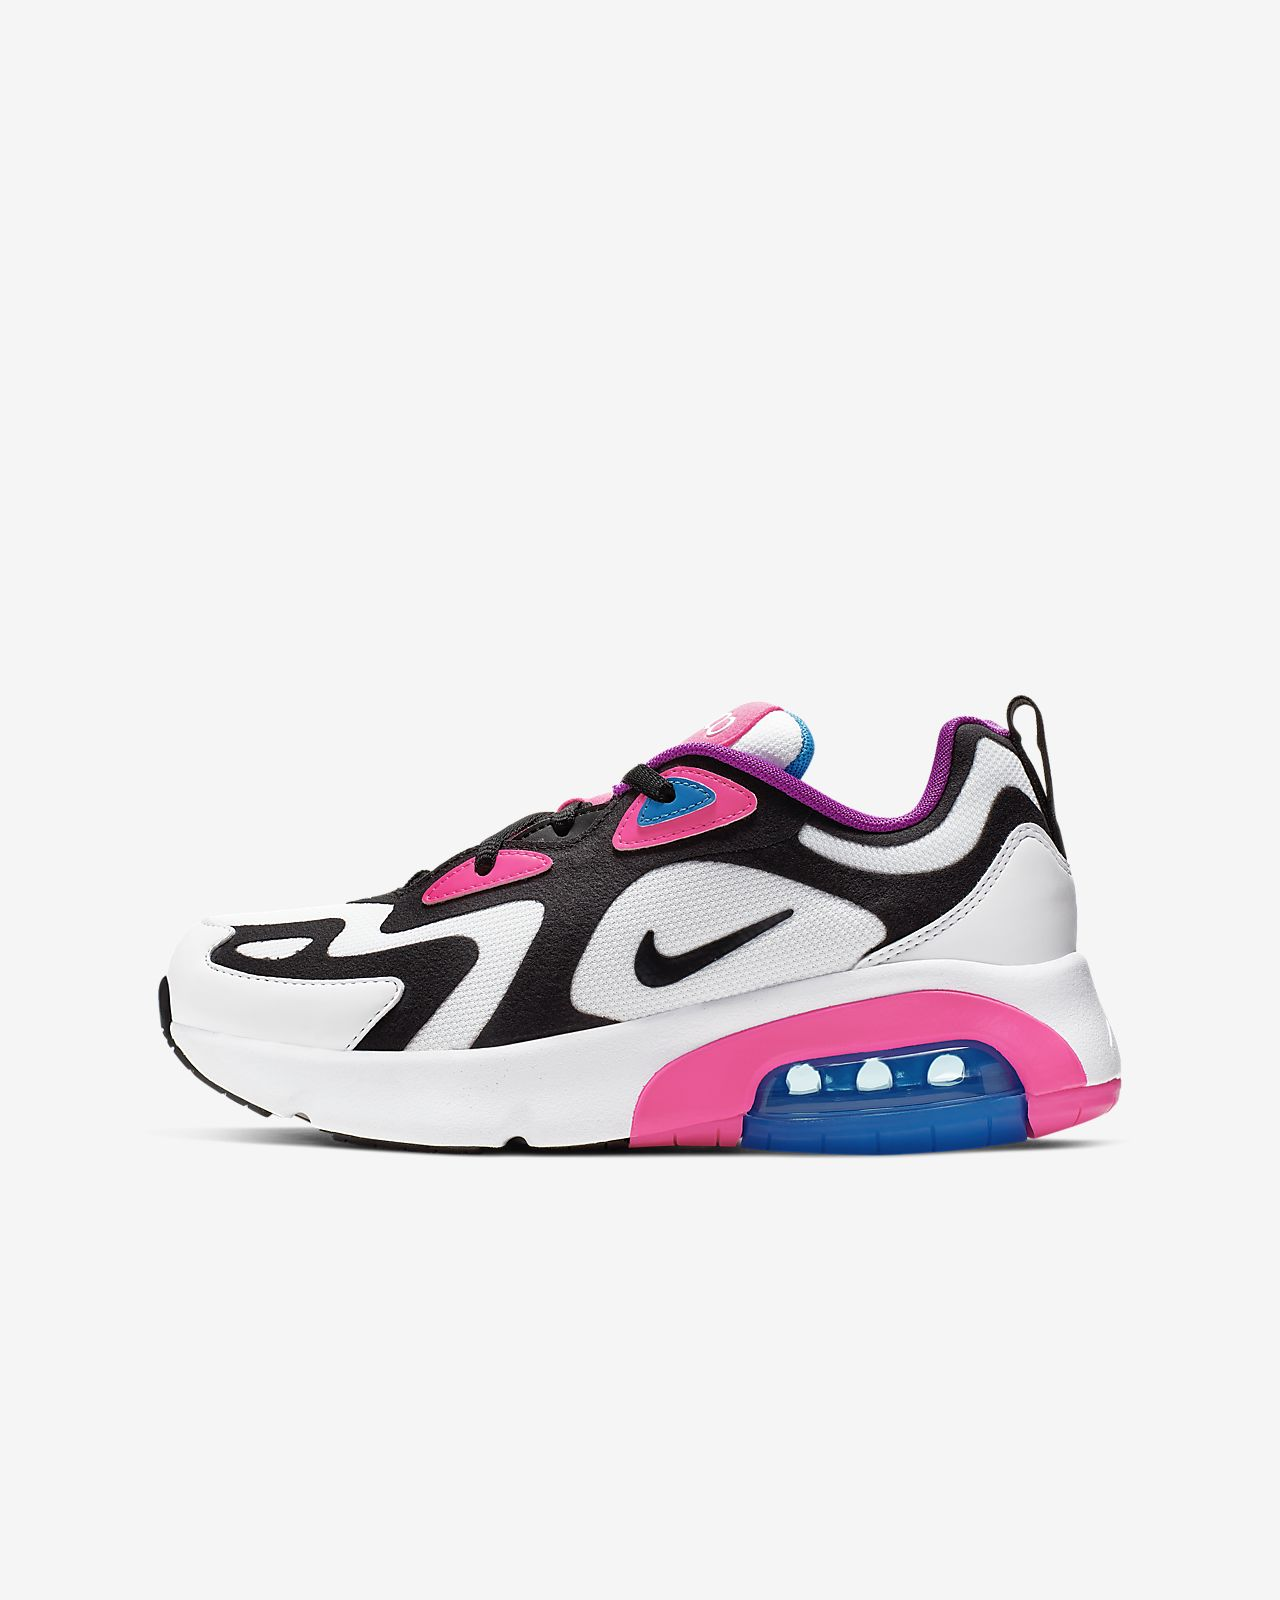 factory outlet reasonable price size 40 Older Max Kids' Shoe Air 200 Nike DYbH9IeE2W